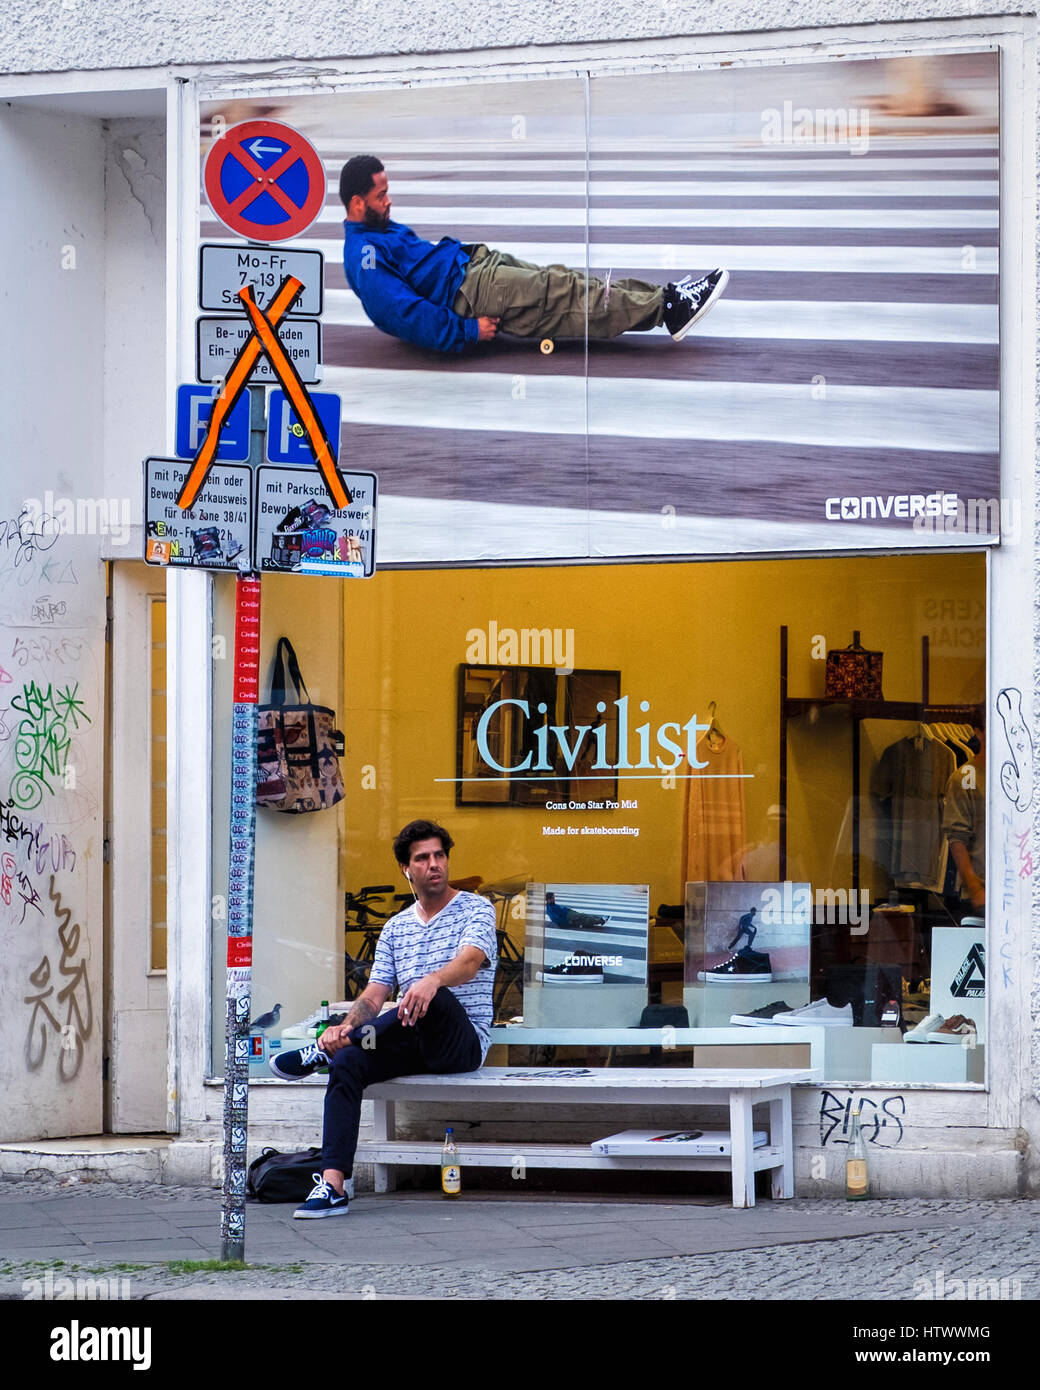 Berlin, Mitte. Civilist shop selling Converse trainers and clothing. Exterior advertisement and display window - Stock Image